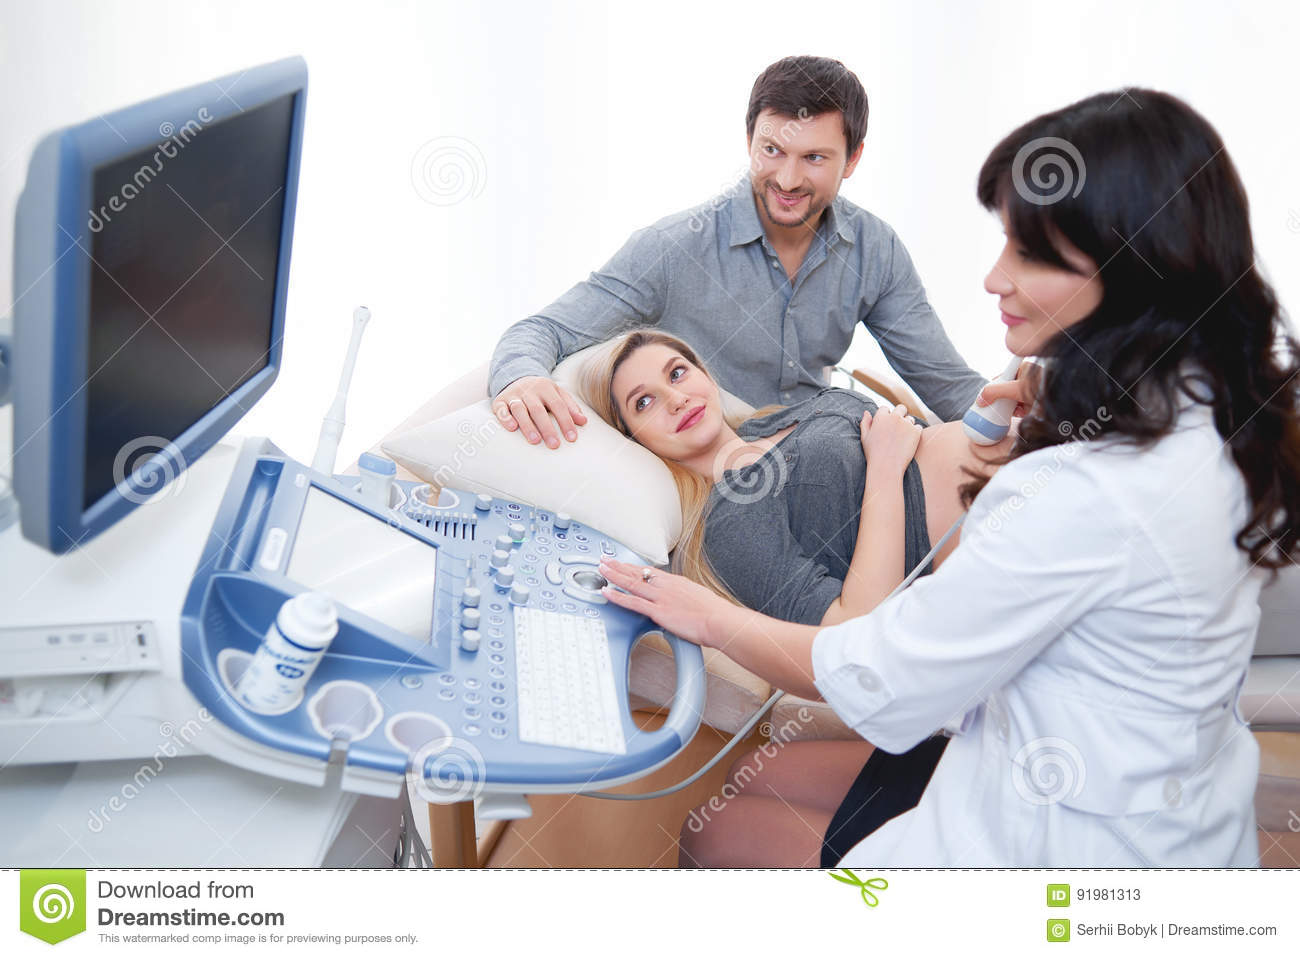 Young Loving Pregnant Couple Visiting Doctor Together Stock Image - Image  of mother, image: 91981313